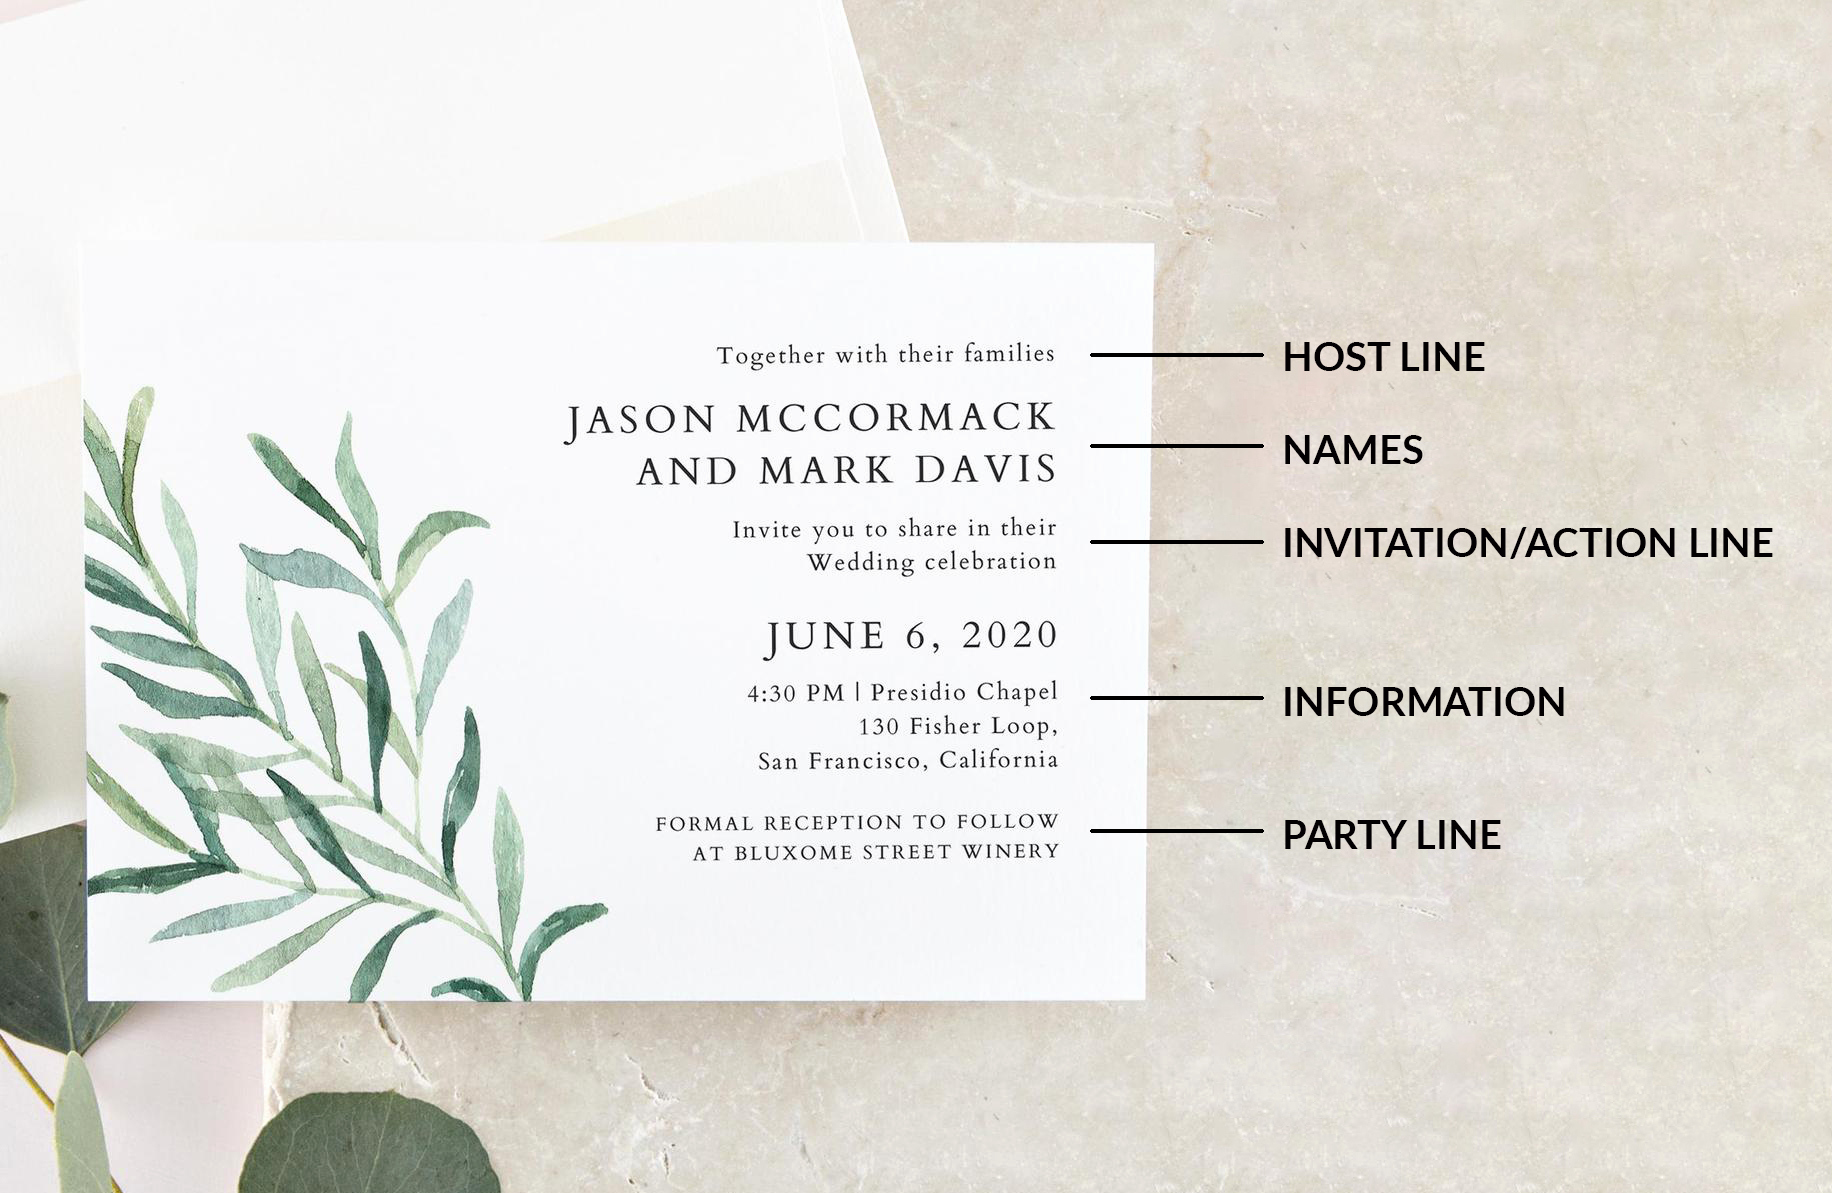 Formal Invitation to Follow Fresh formal Invitation Will Follow